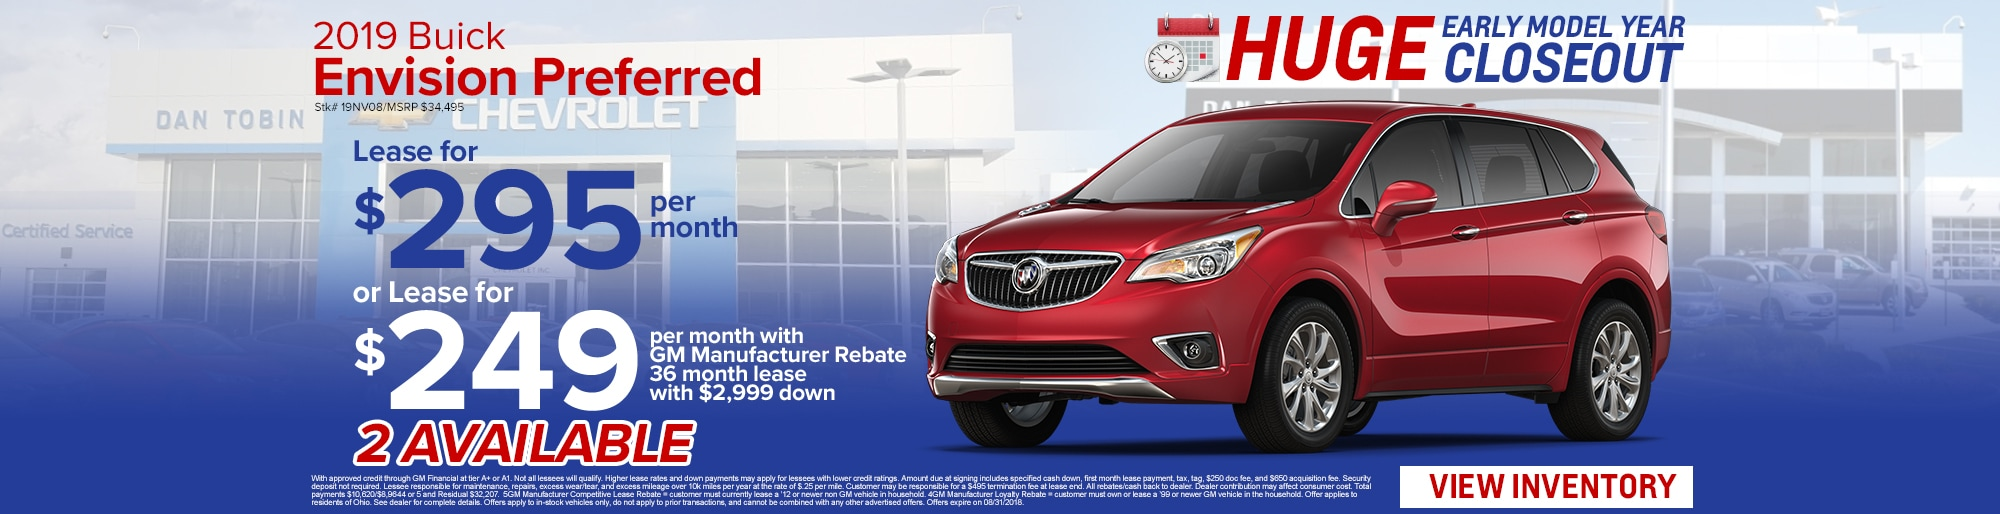 Buick Dealers Columbus Ohio >> New Chevrolet Buick GMC & Used Car Dealership in Columbus, OH, Serving Dublin & Westerville